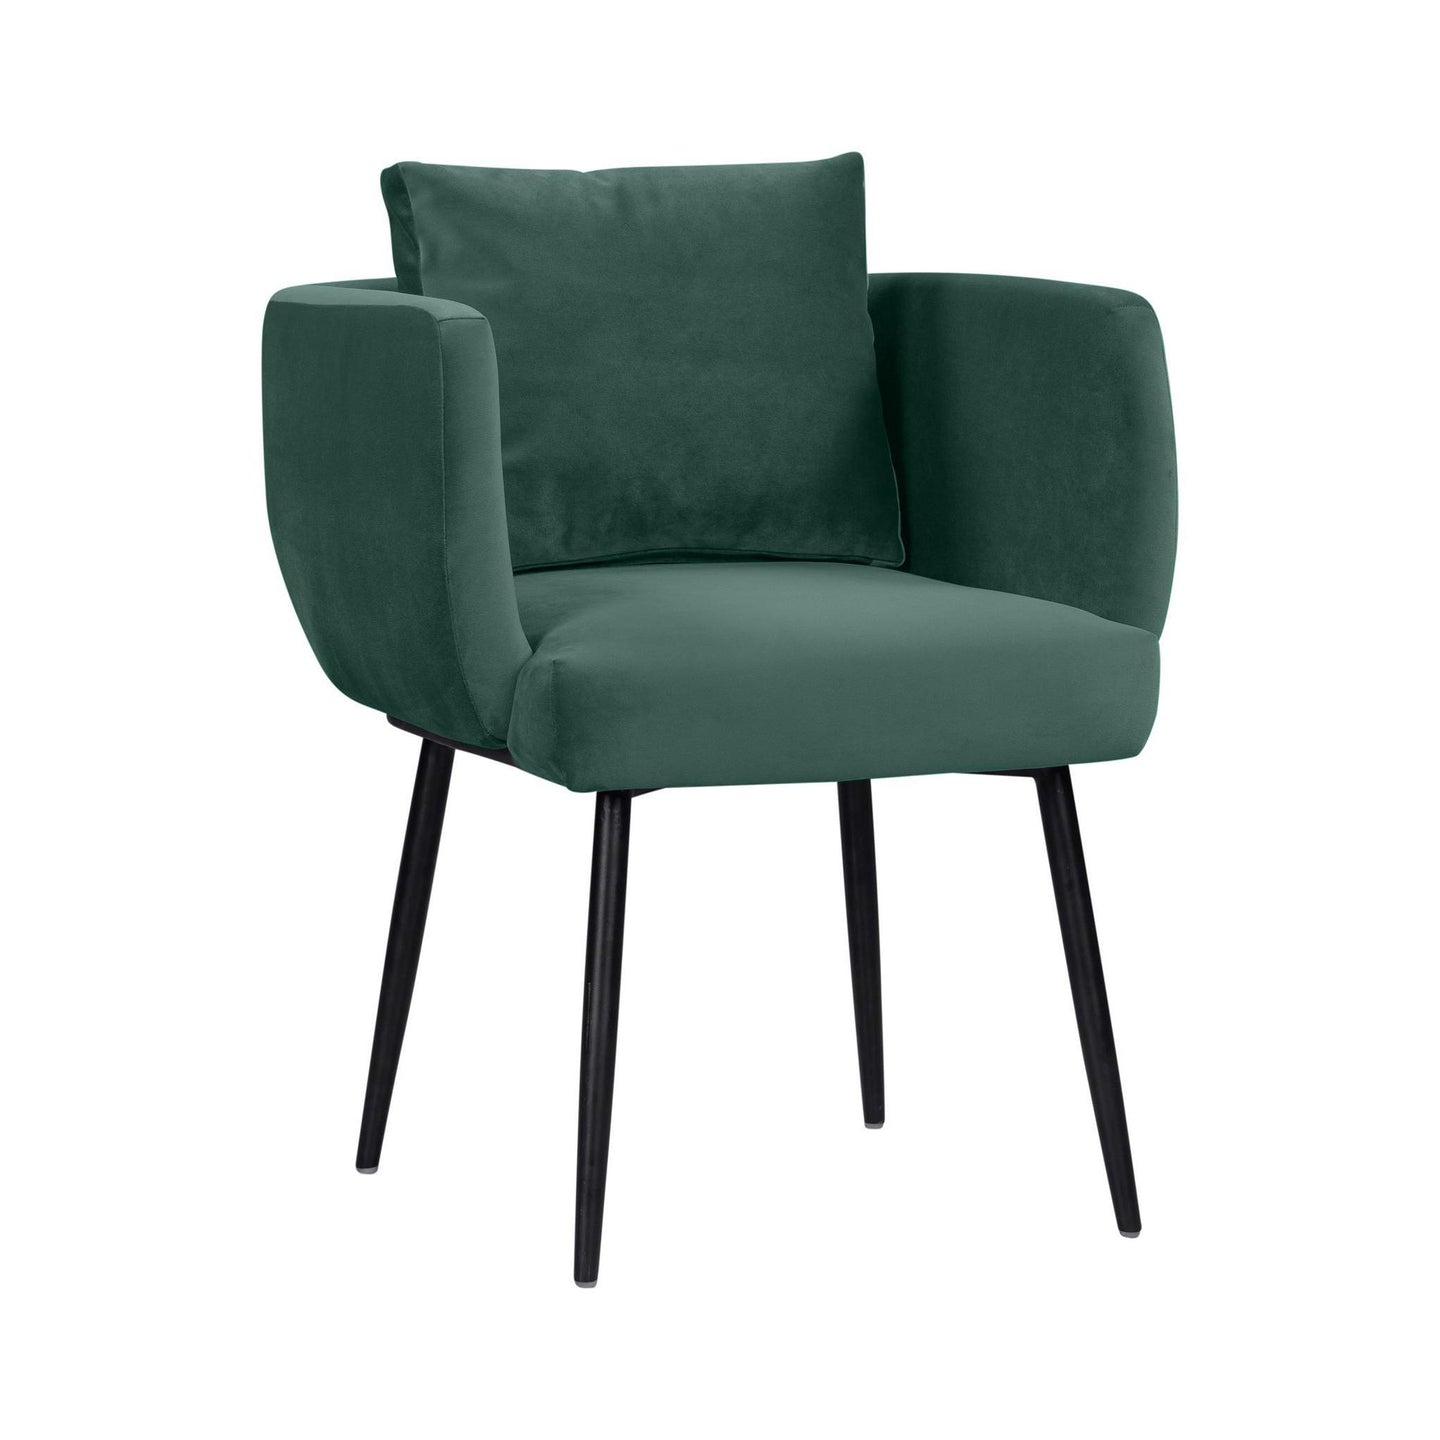 TOV Furniture Modern Alto Forest Green Velvet Chair - TOV Furniture, Minimal & Modern - 1